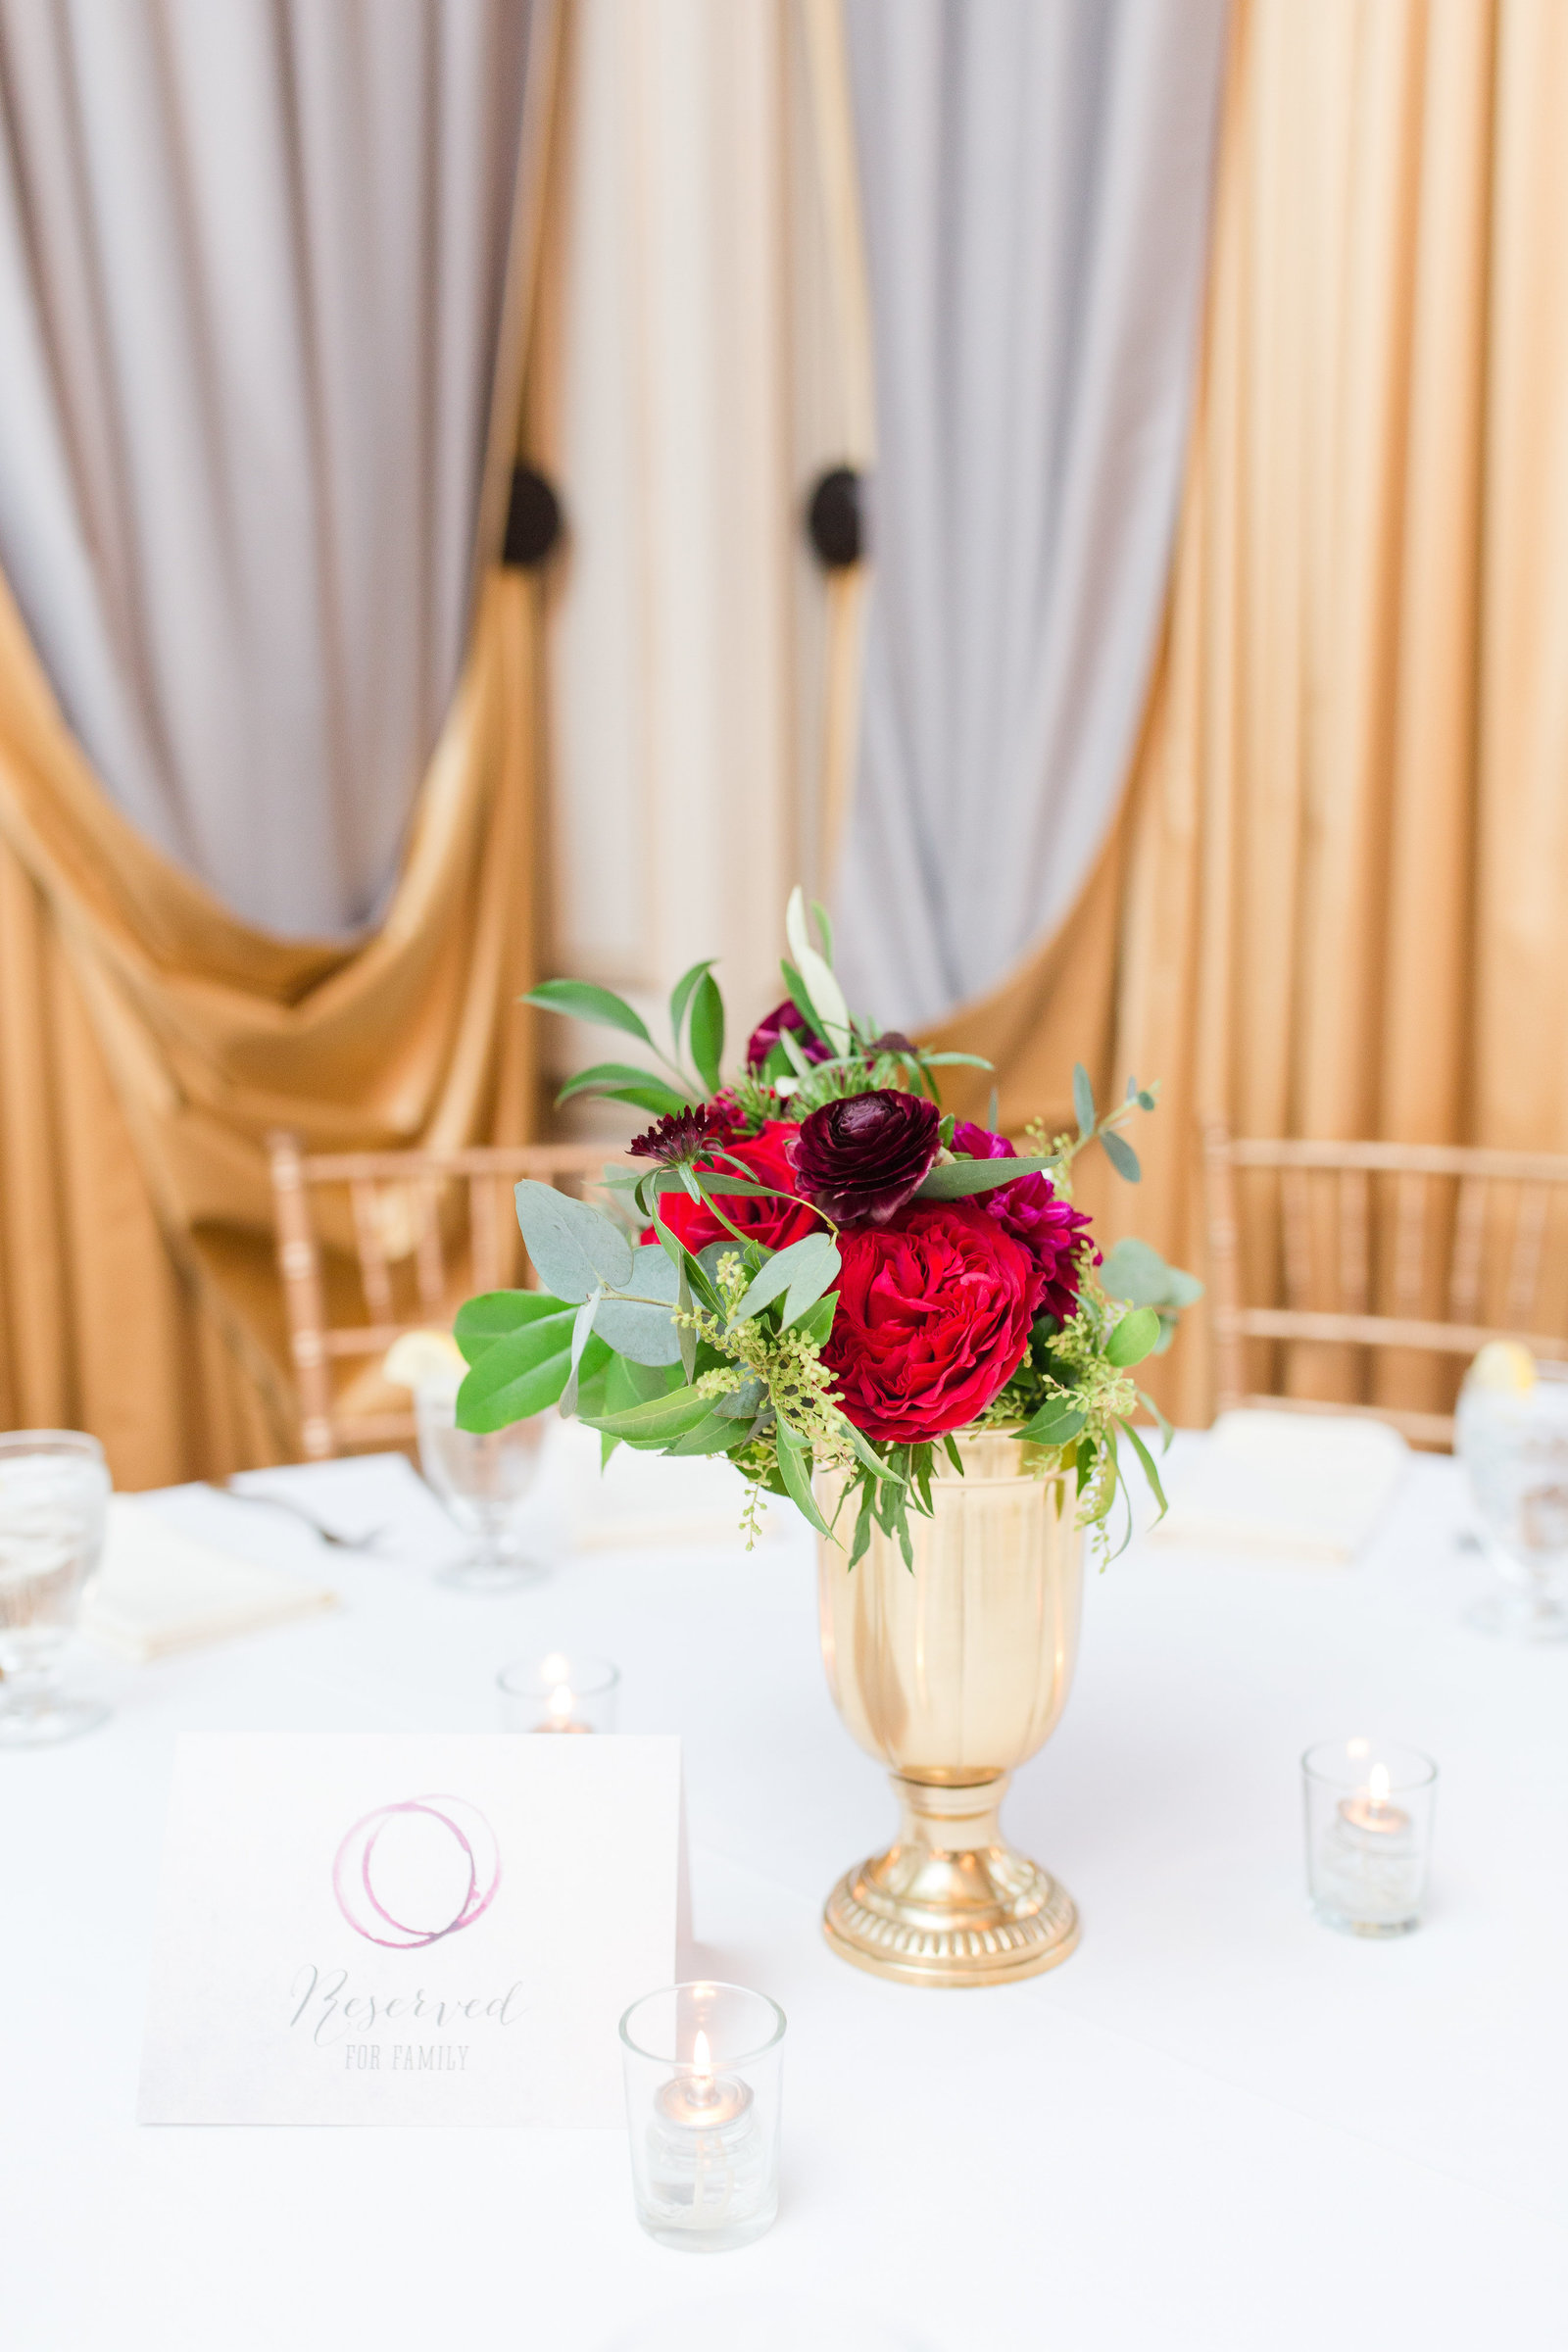 wine inspired centerpiece from everly alaine florals